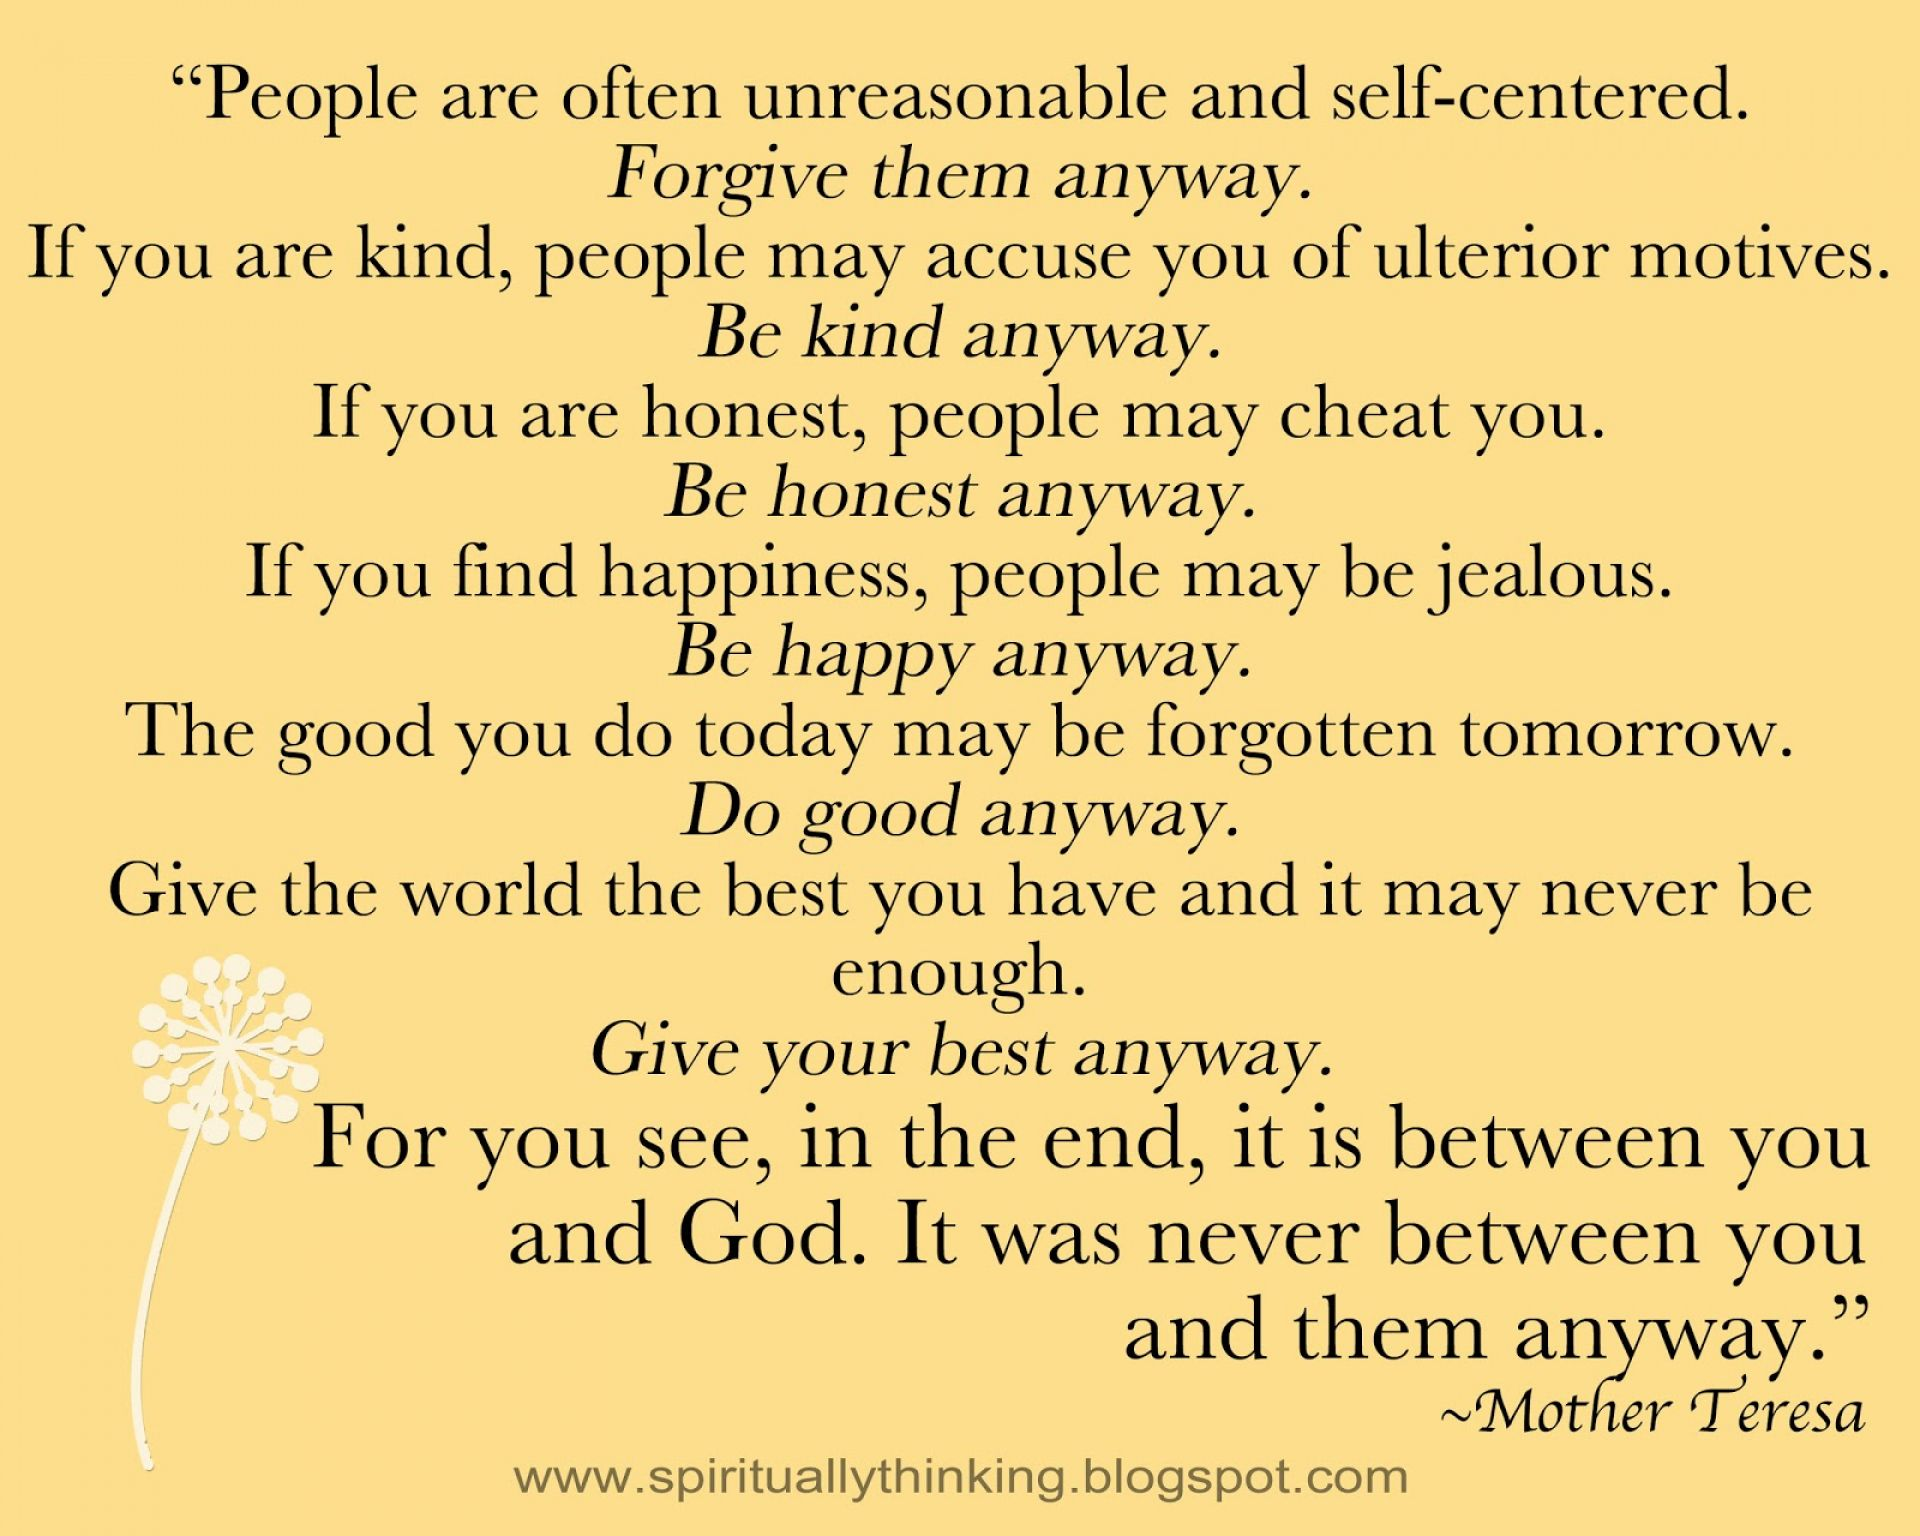 Mother Teresa Quotes Life Image Result For Mother Teresa Quotes Love Them Anyway  Sayings